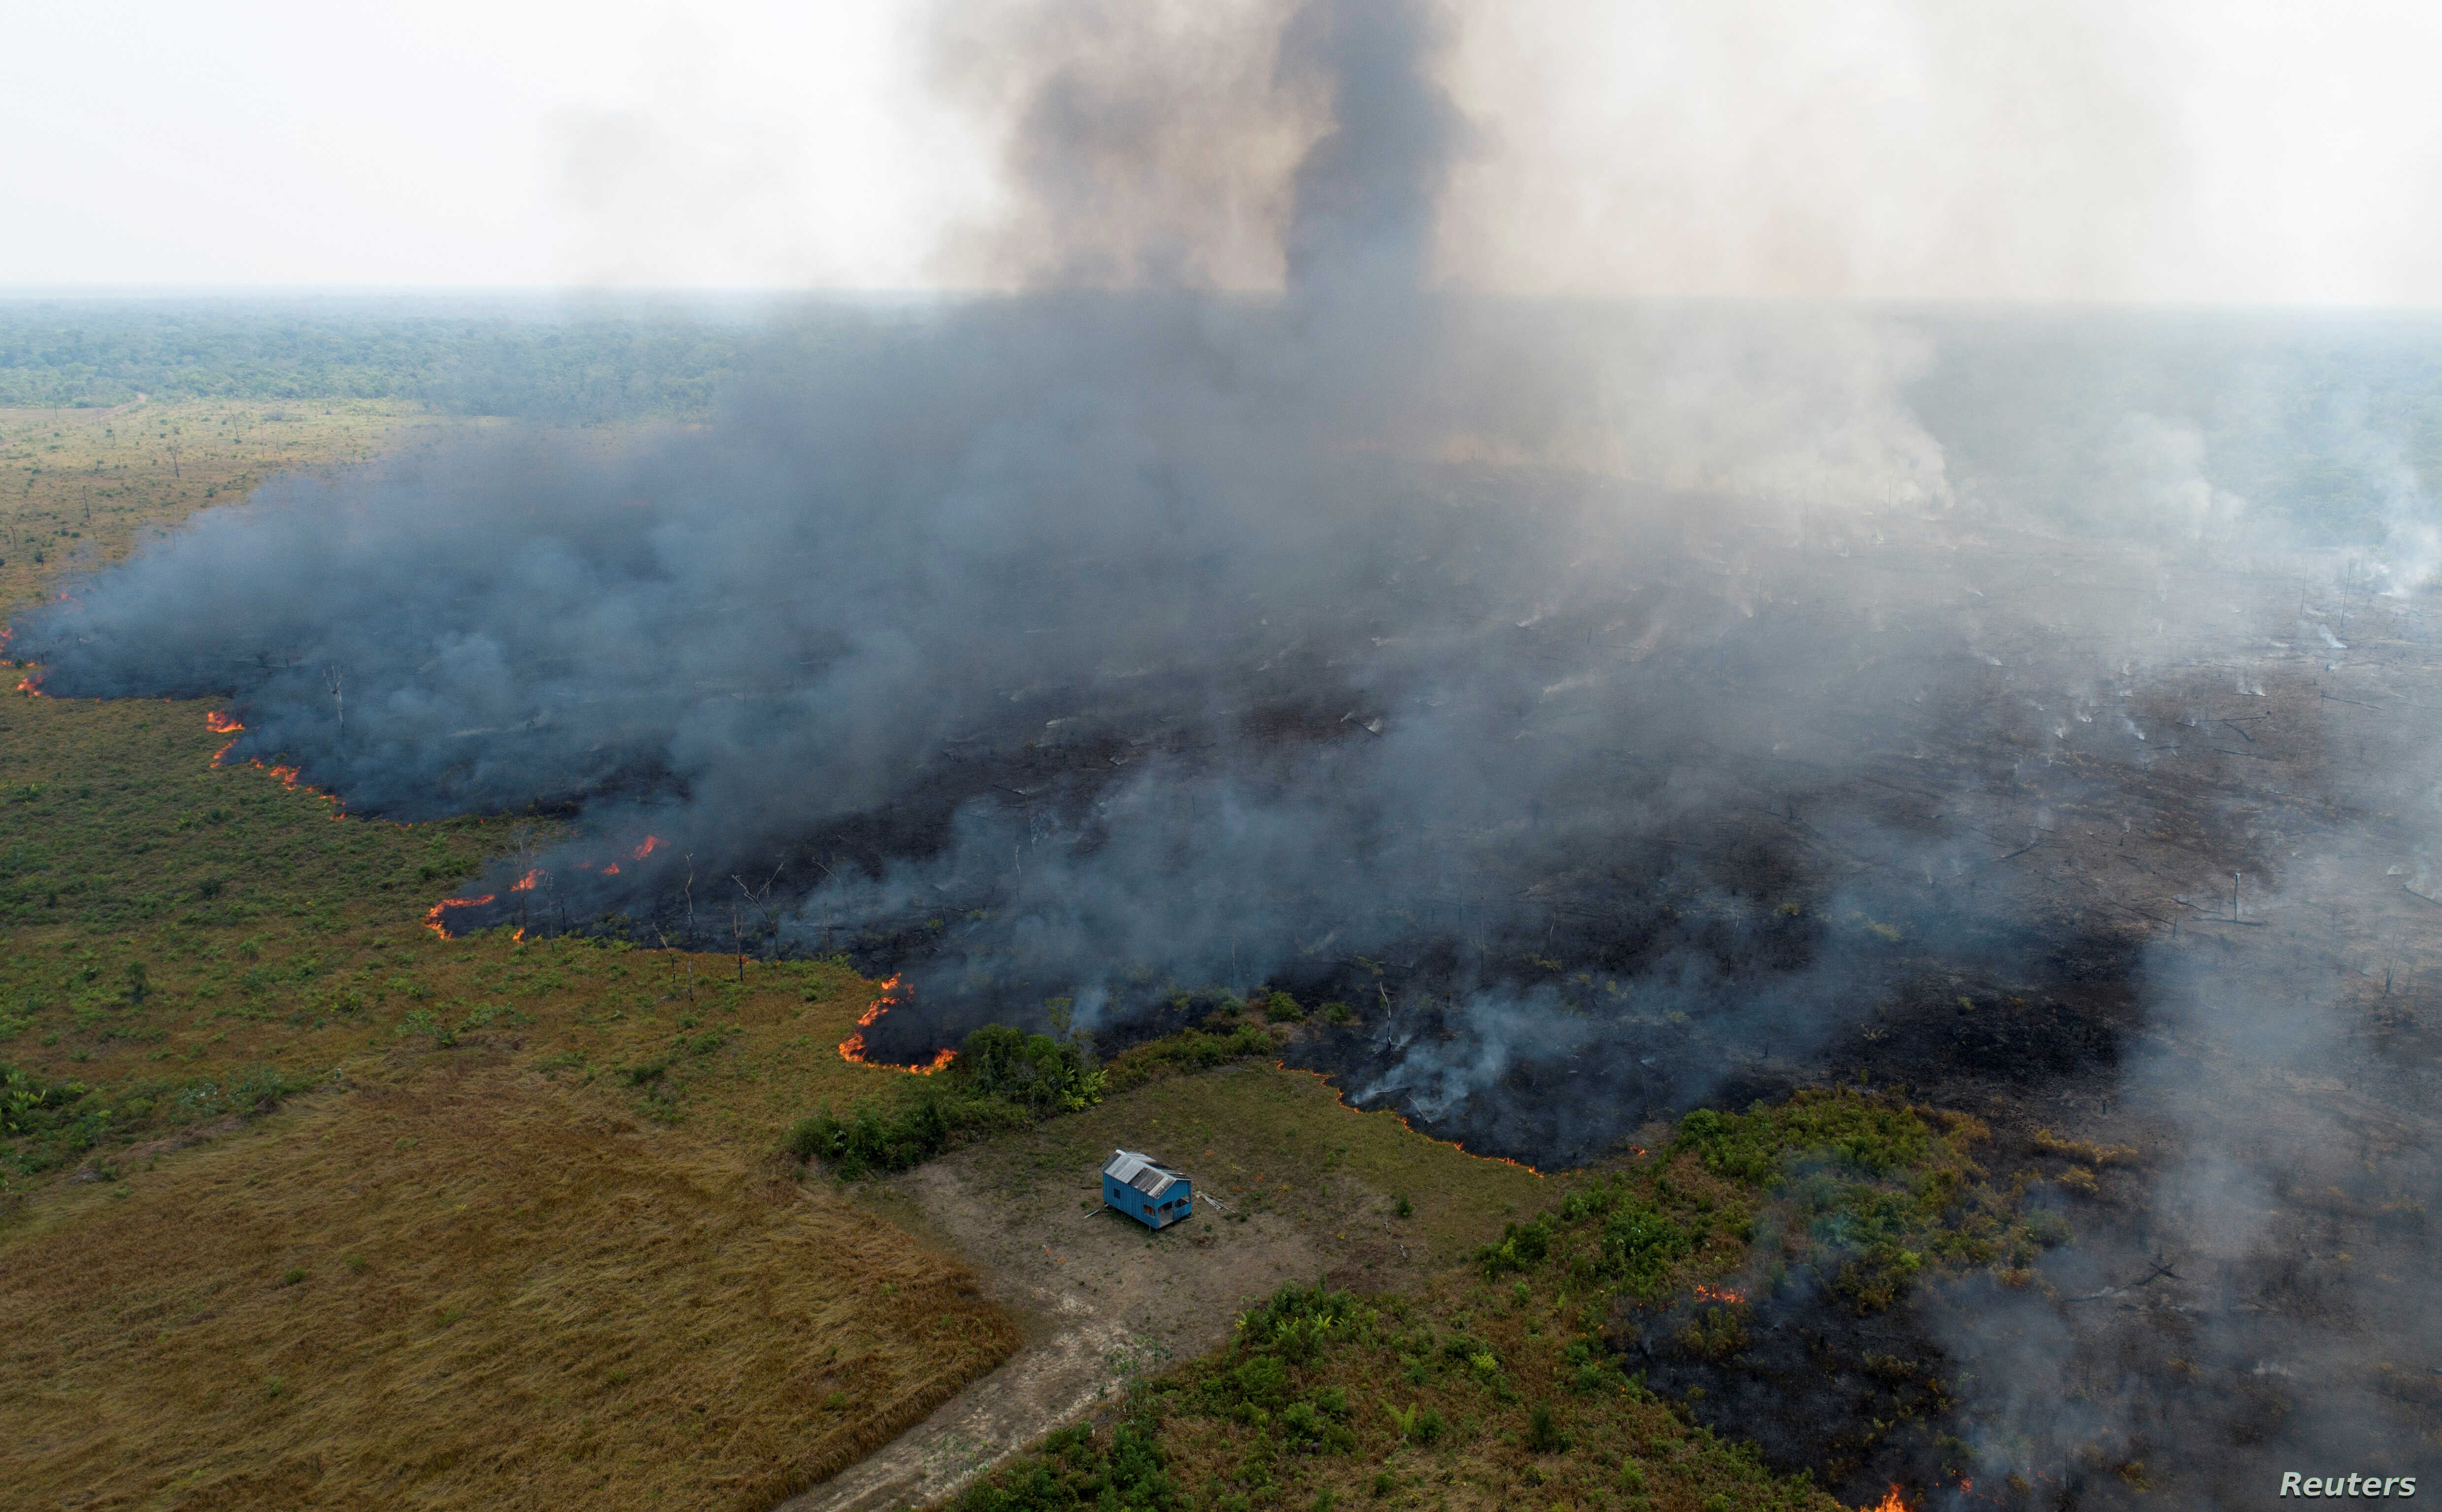 An aerial view shows smoke rising over a deforested plot of the Amazon jungle in Porto Velho, Rondonia State, Brazil, Aug. 27, 2019.